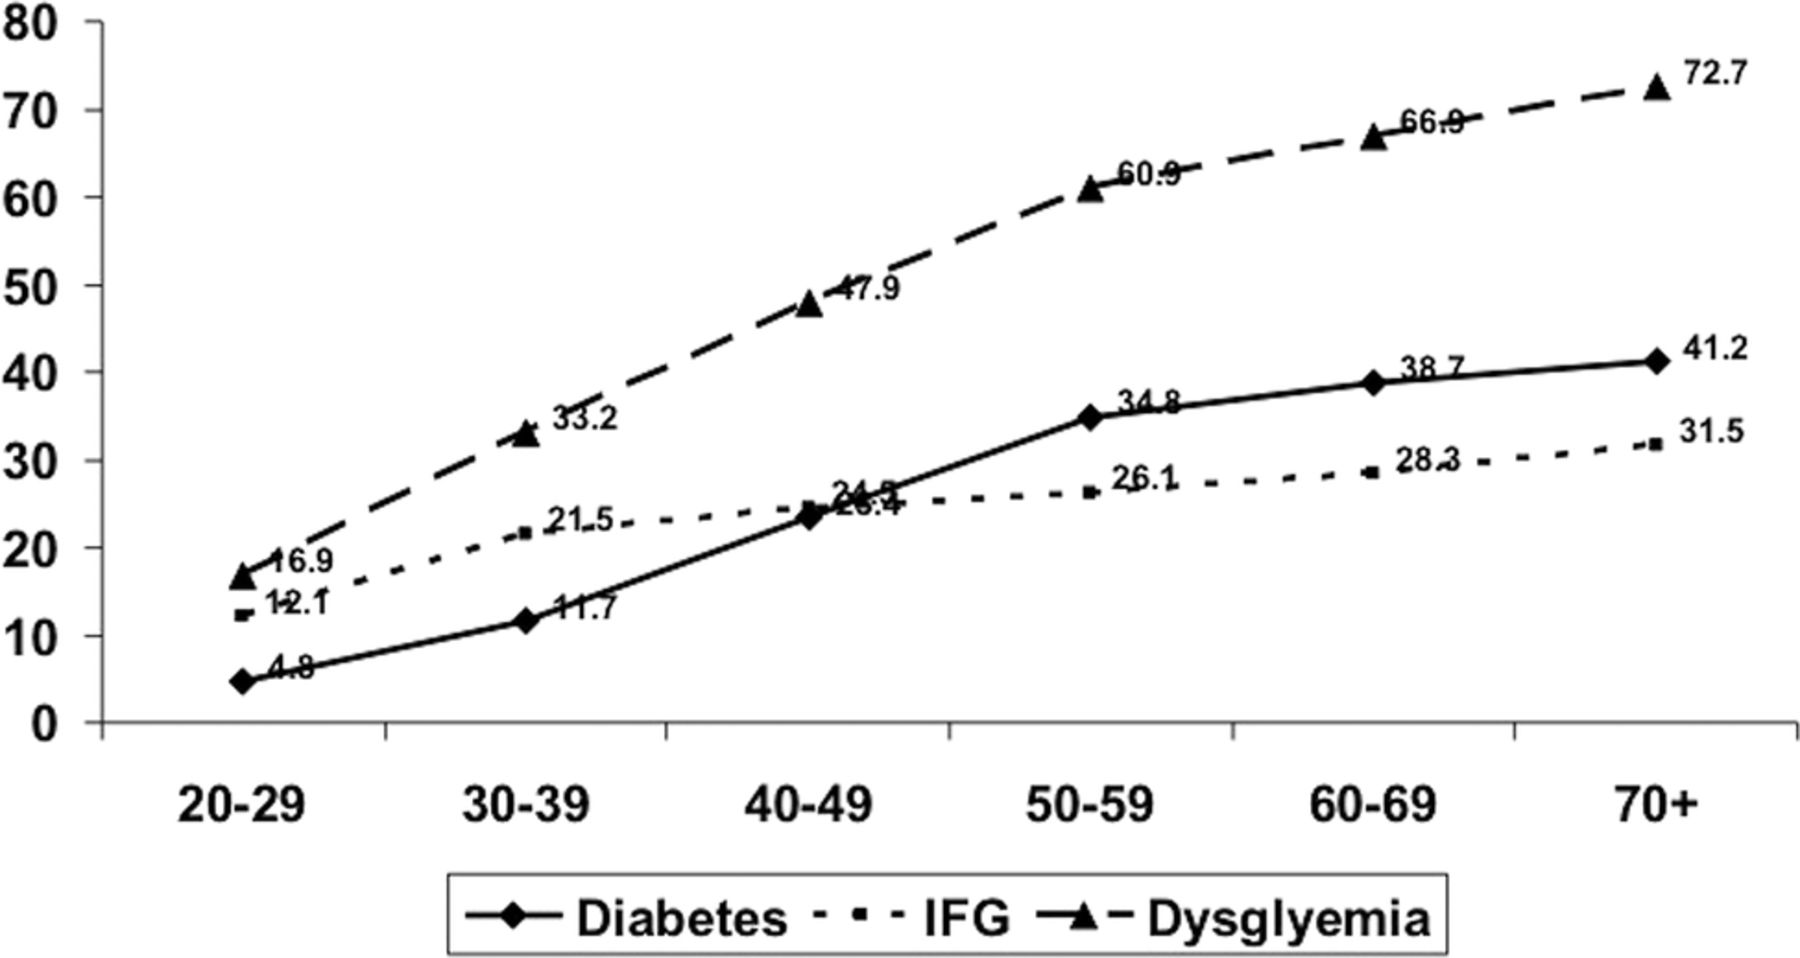 Prevalence Of Diabetes And Cardiovascular Risk Factors In Middle